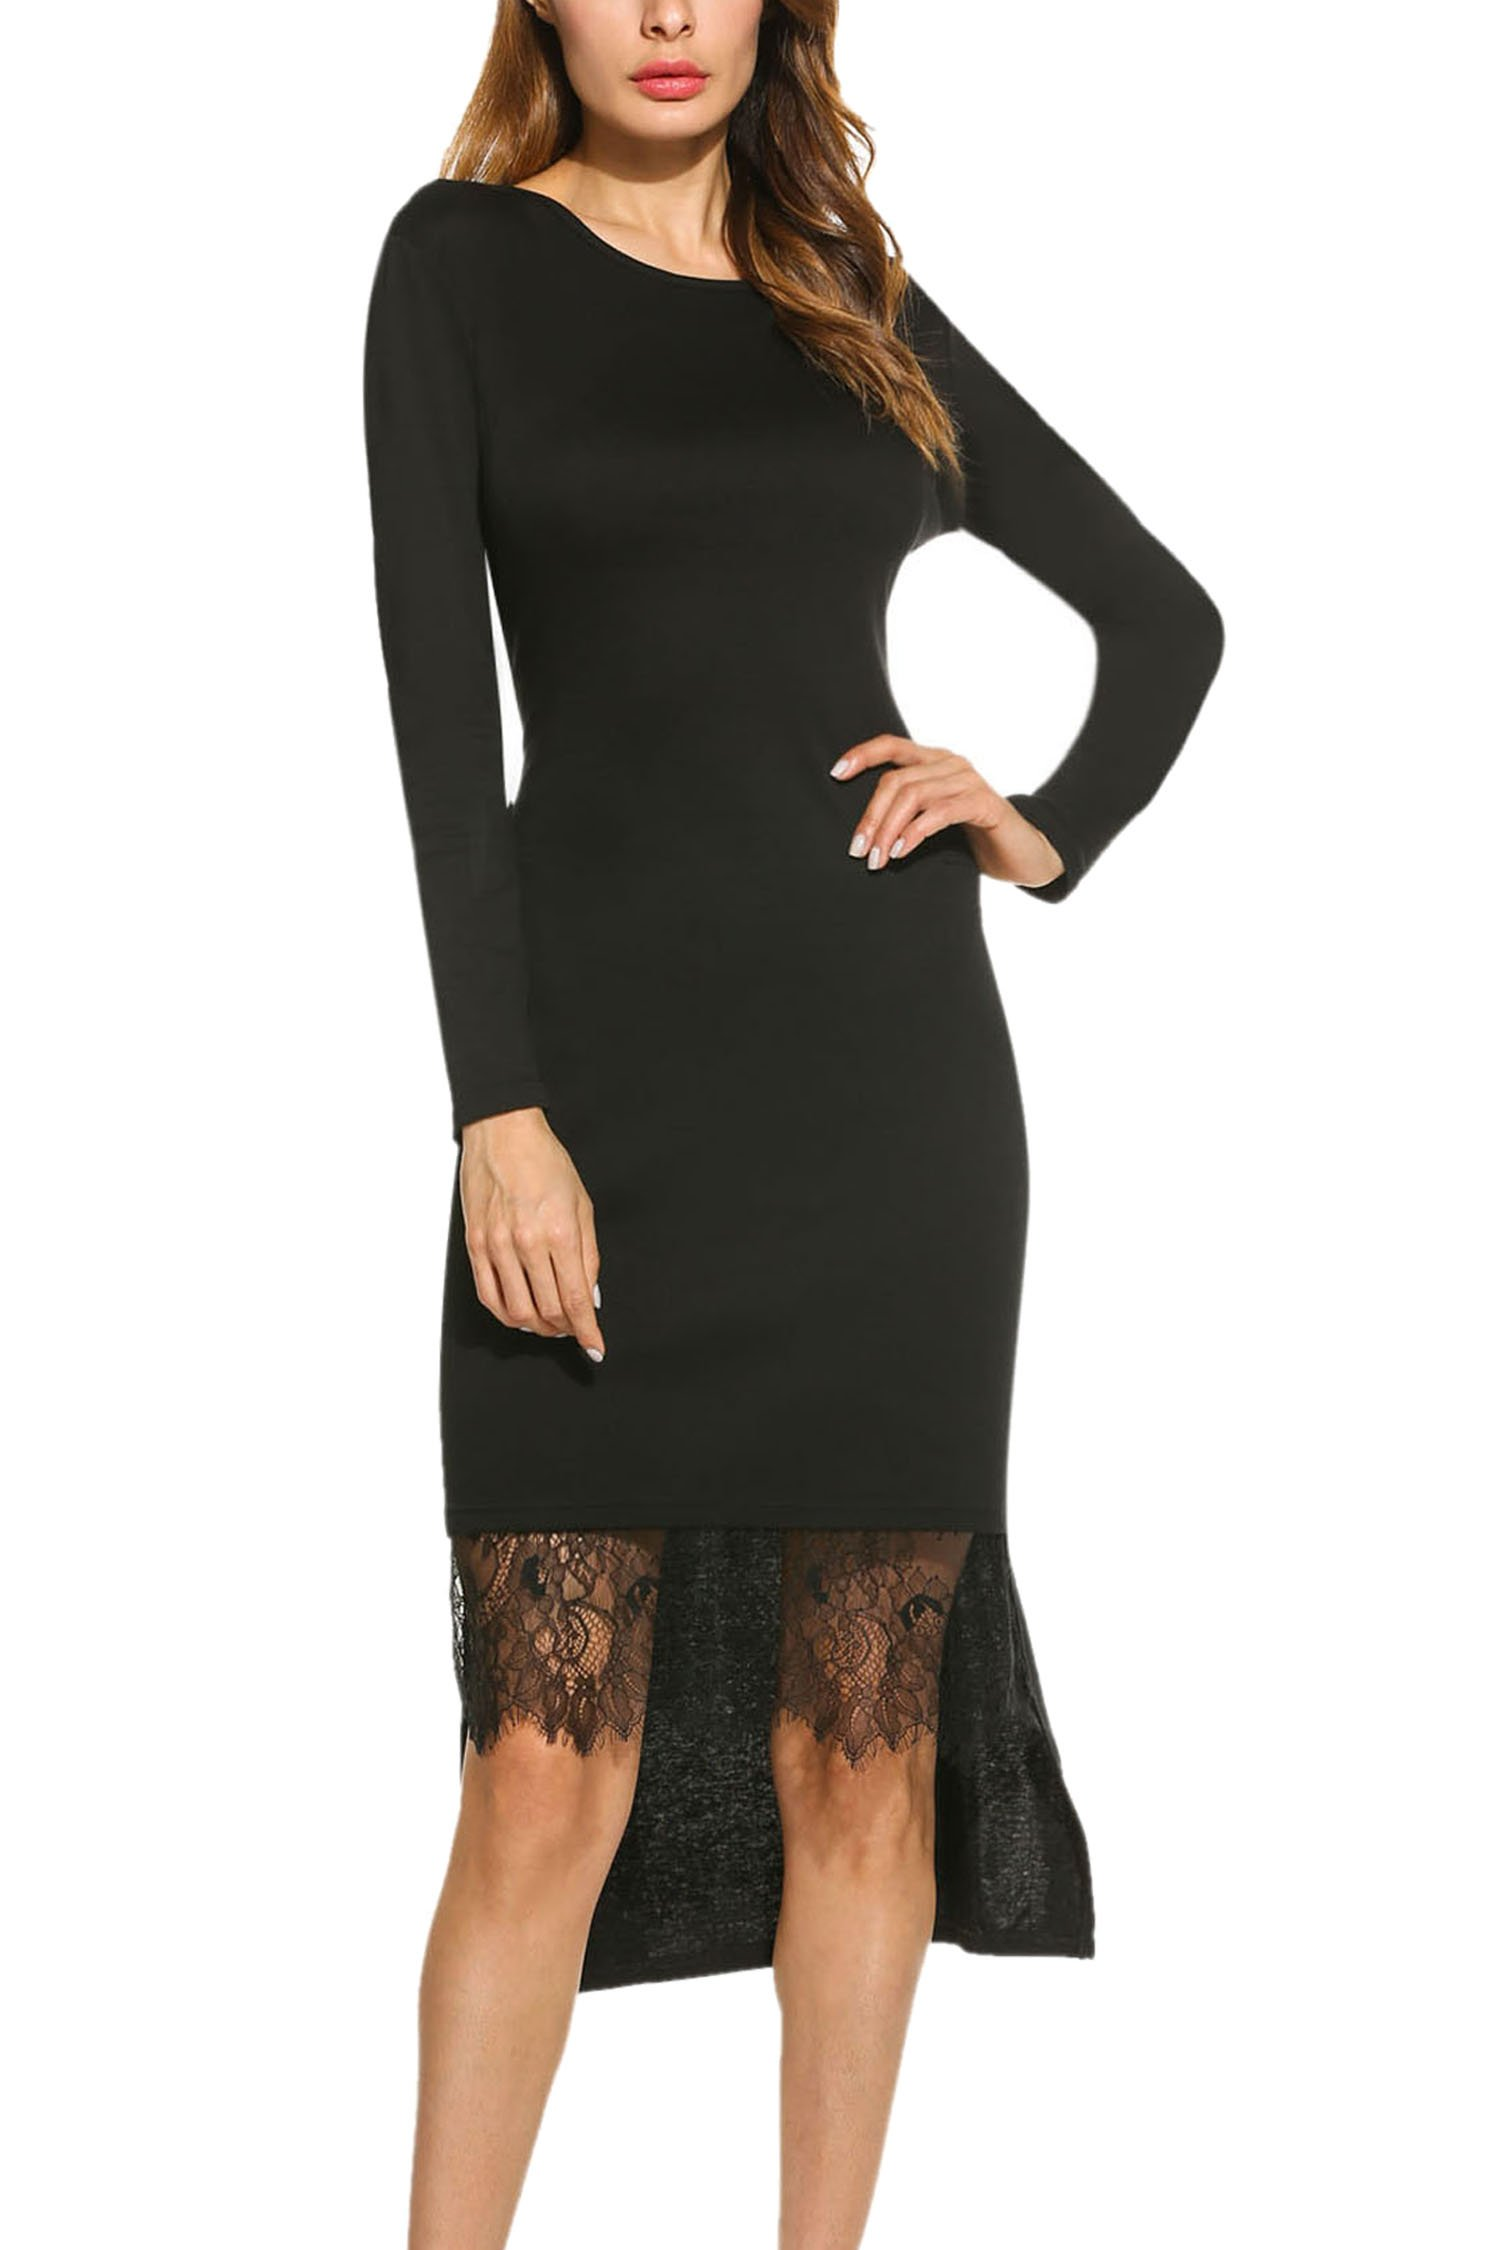 Meaneor Women's Lace Patchwork Asymmetrical Dress Long Sleeve High Low Hem